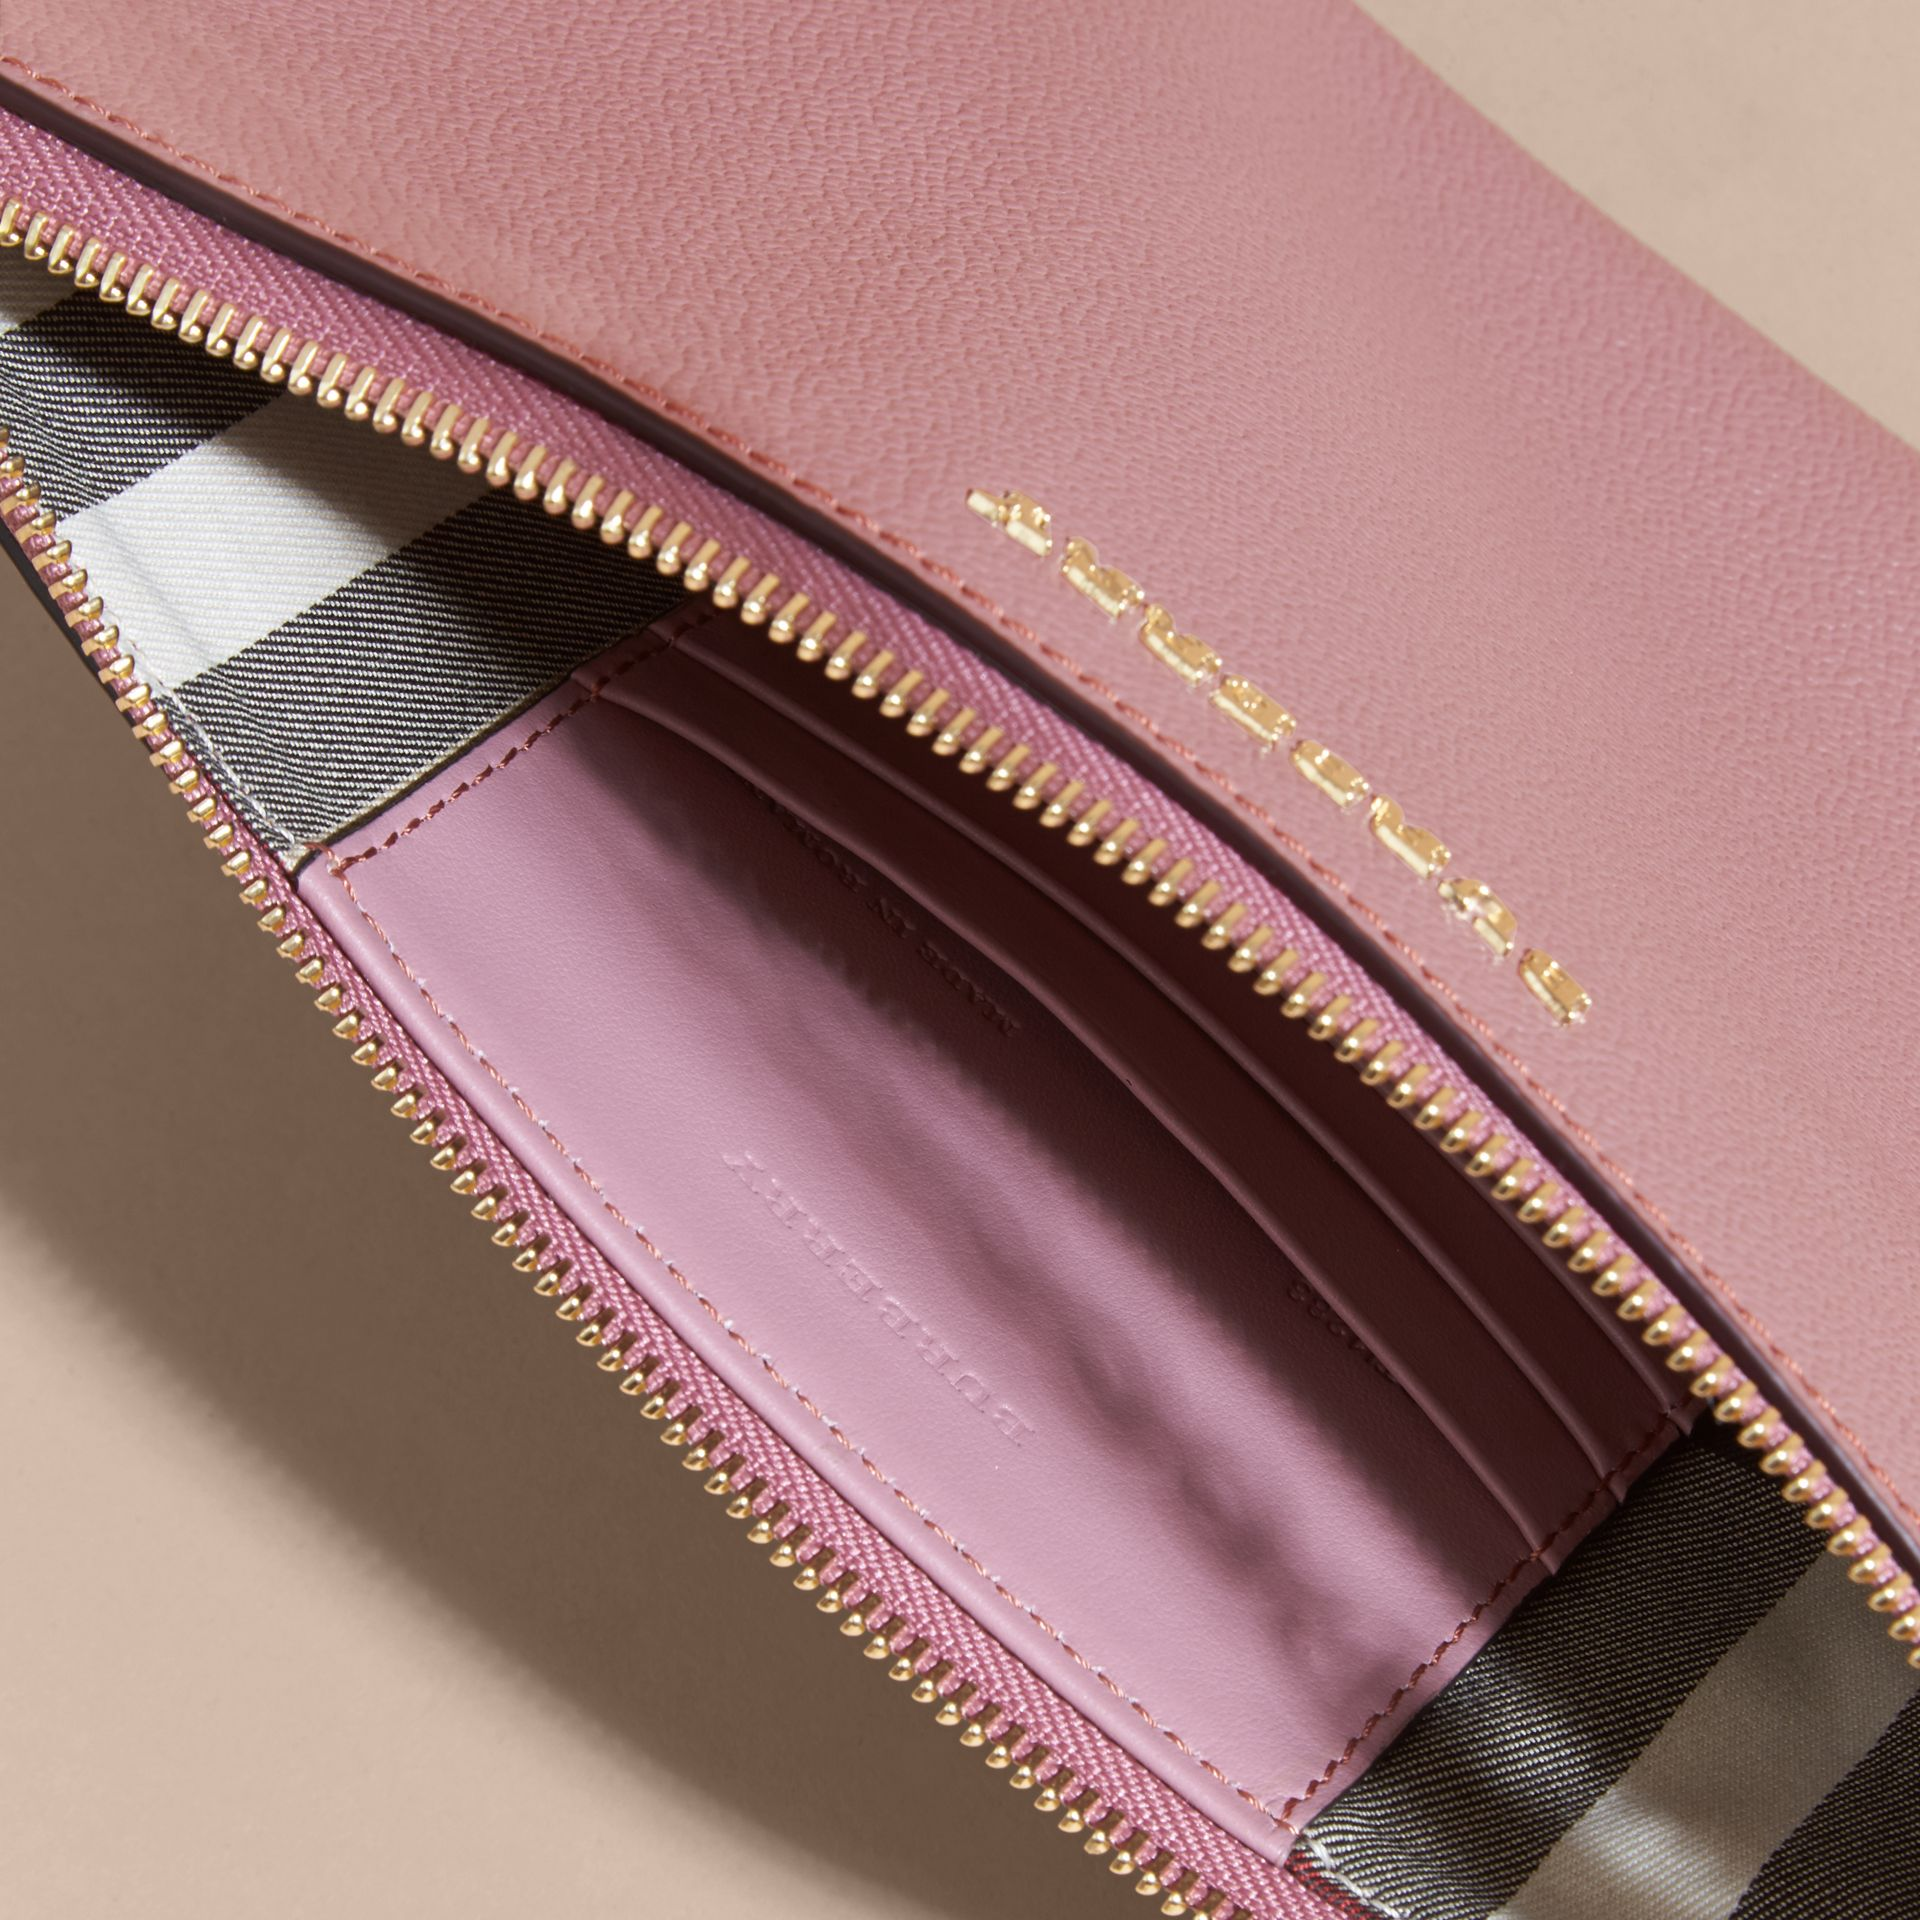 Leather Clutch Bag with Check Lining in Dusty Pink - Women | Burberry - gallery image 6